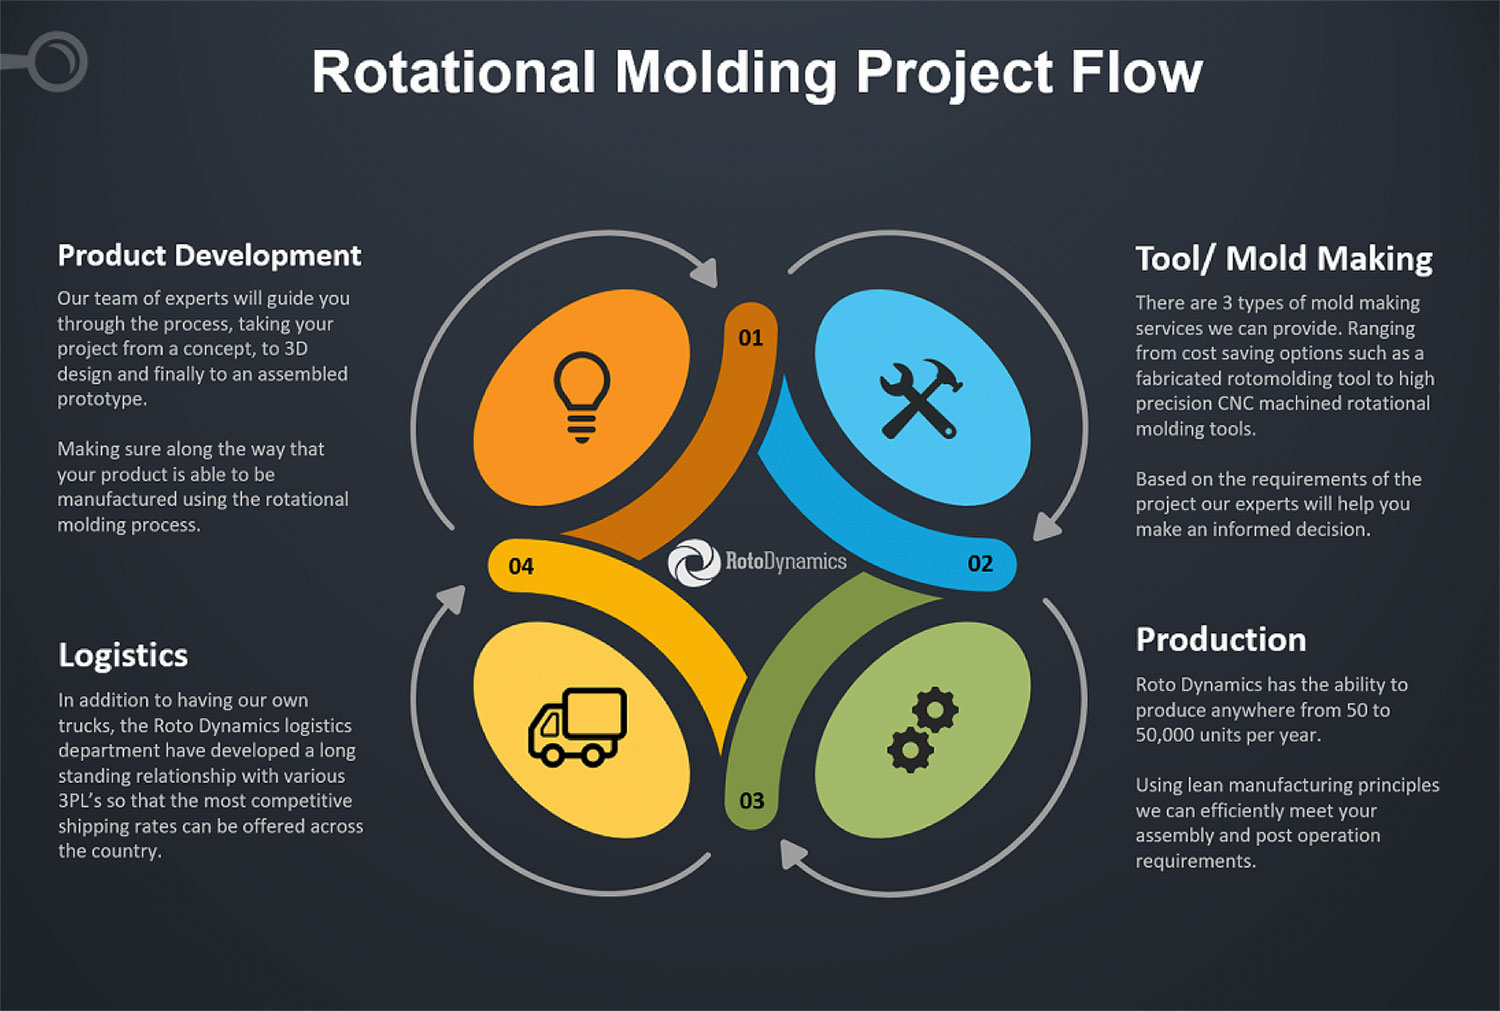 rotomolding product development